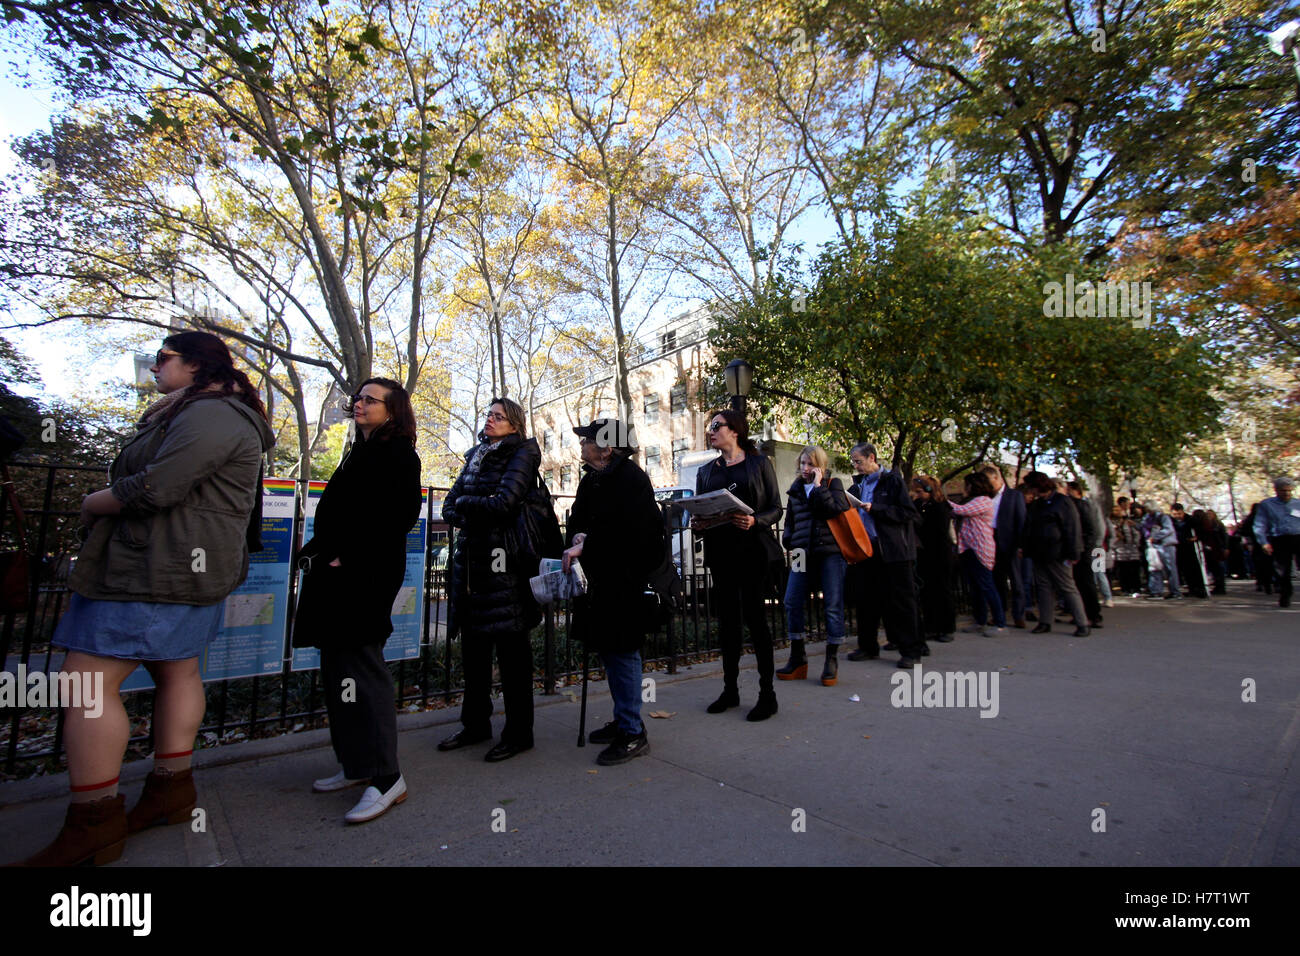 New York, United States. 08th Nov, 2016. Voters in the Chelsea neighborhood of Manhattan in New York City line up - Stock Image